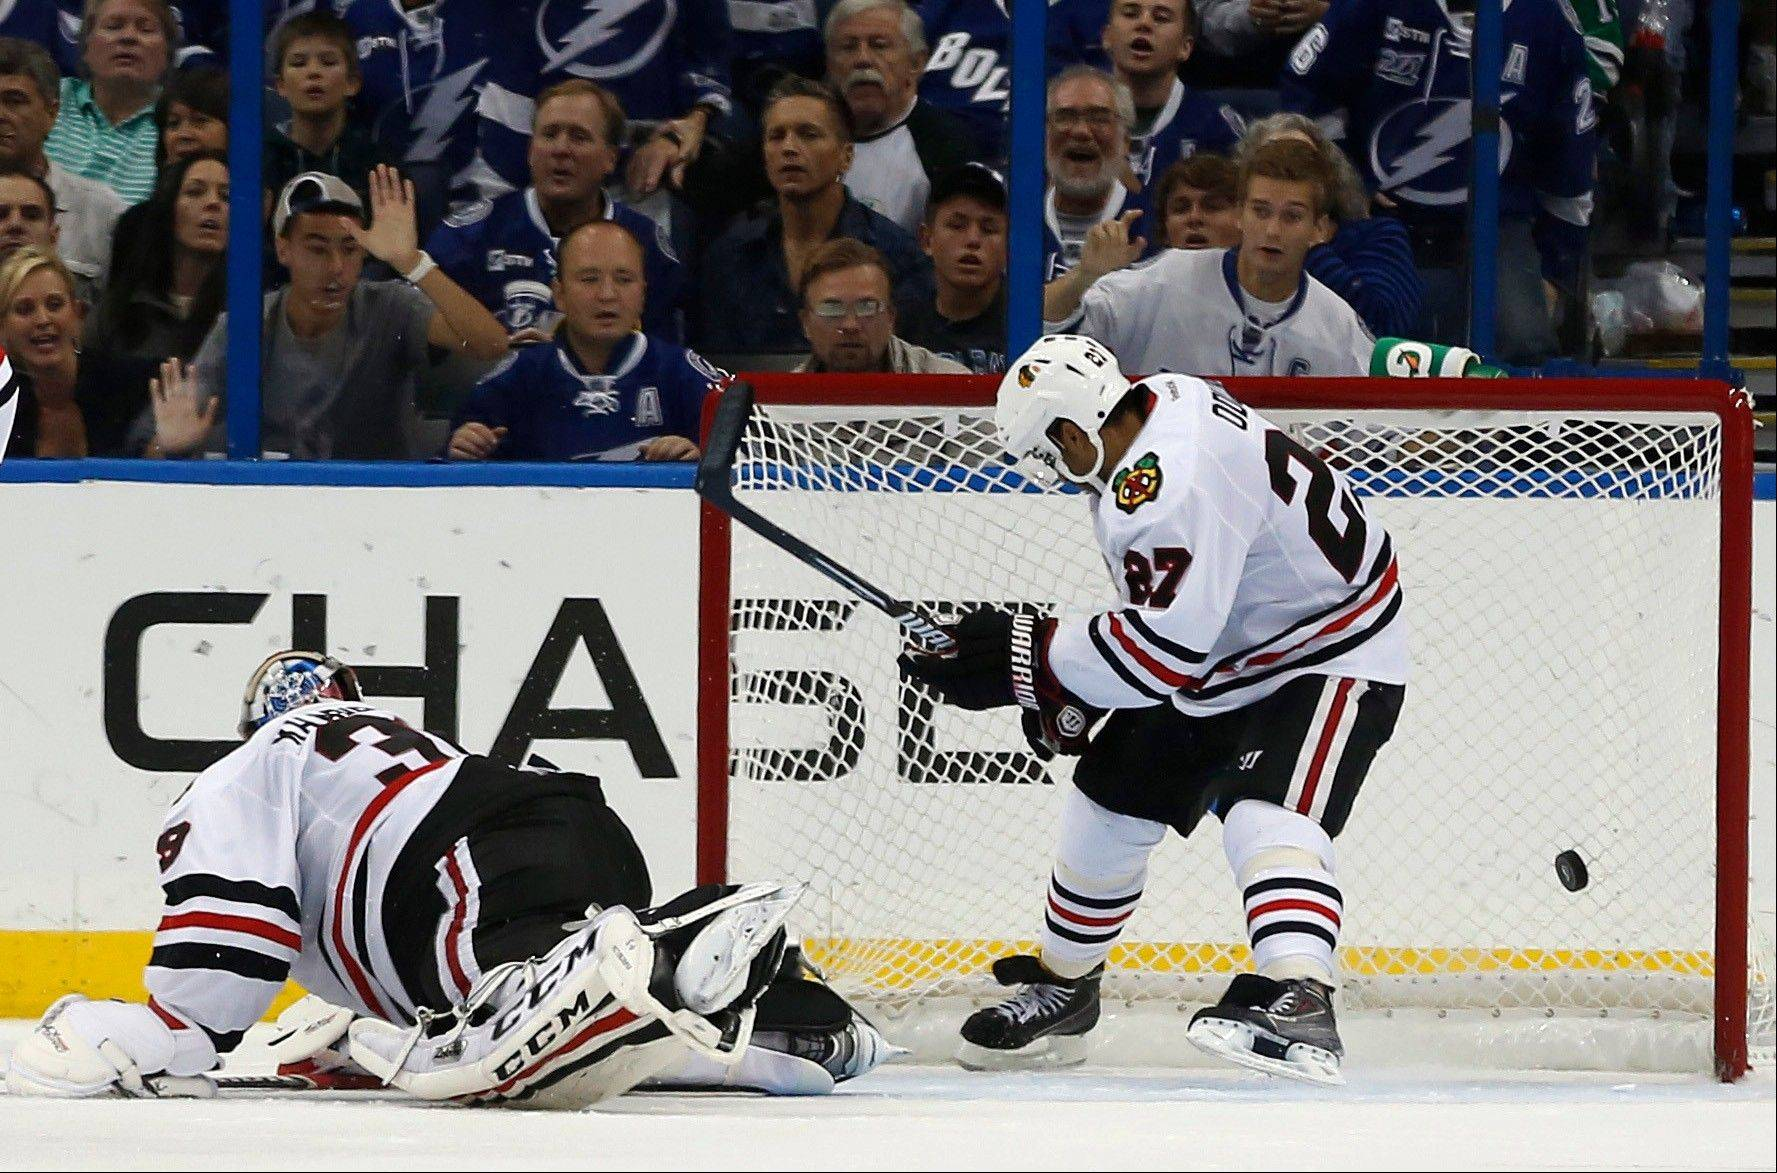 Blackhawks goalie Nikolai Khabibulin (39) cannot stop a backhand goal from Tampa Bay Lightning right wing Martin St. Louis as Blackhawks defenseman Johnny Oduya (27) tries to guard the goal during the sudden death overtime period of a game Thursdayin Tampa, Fla.